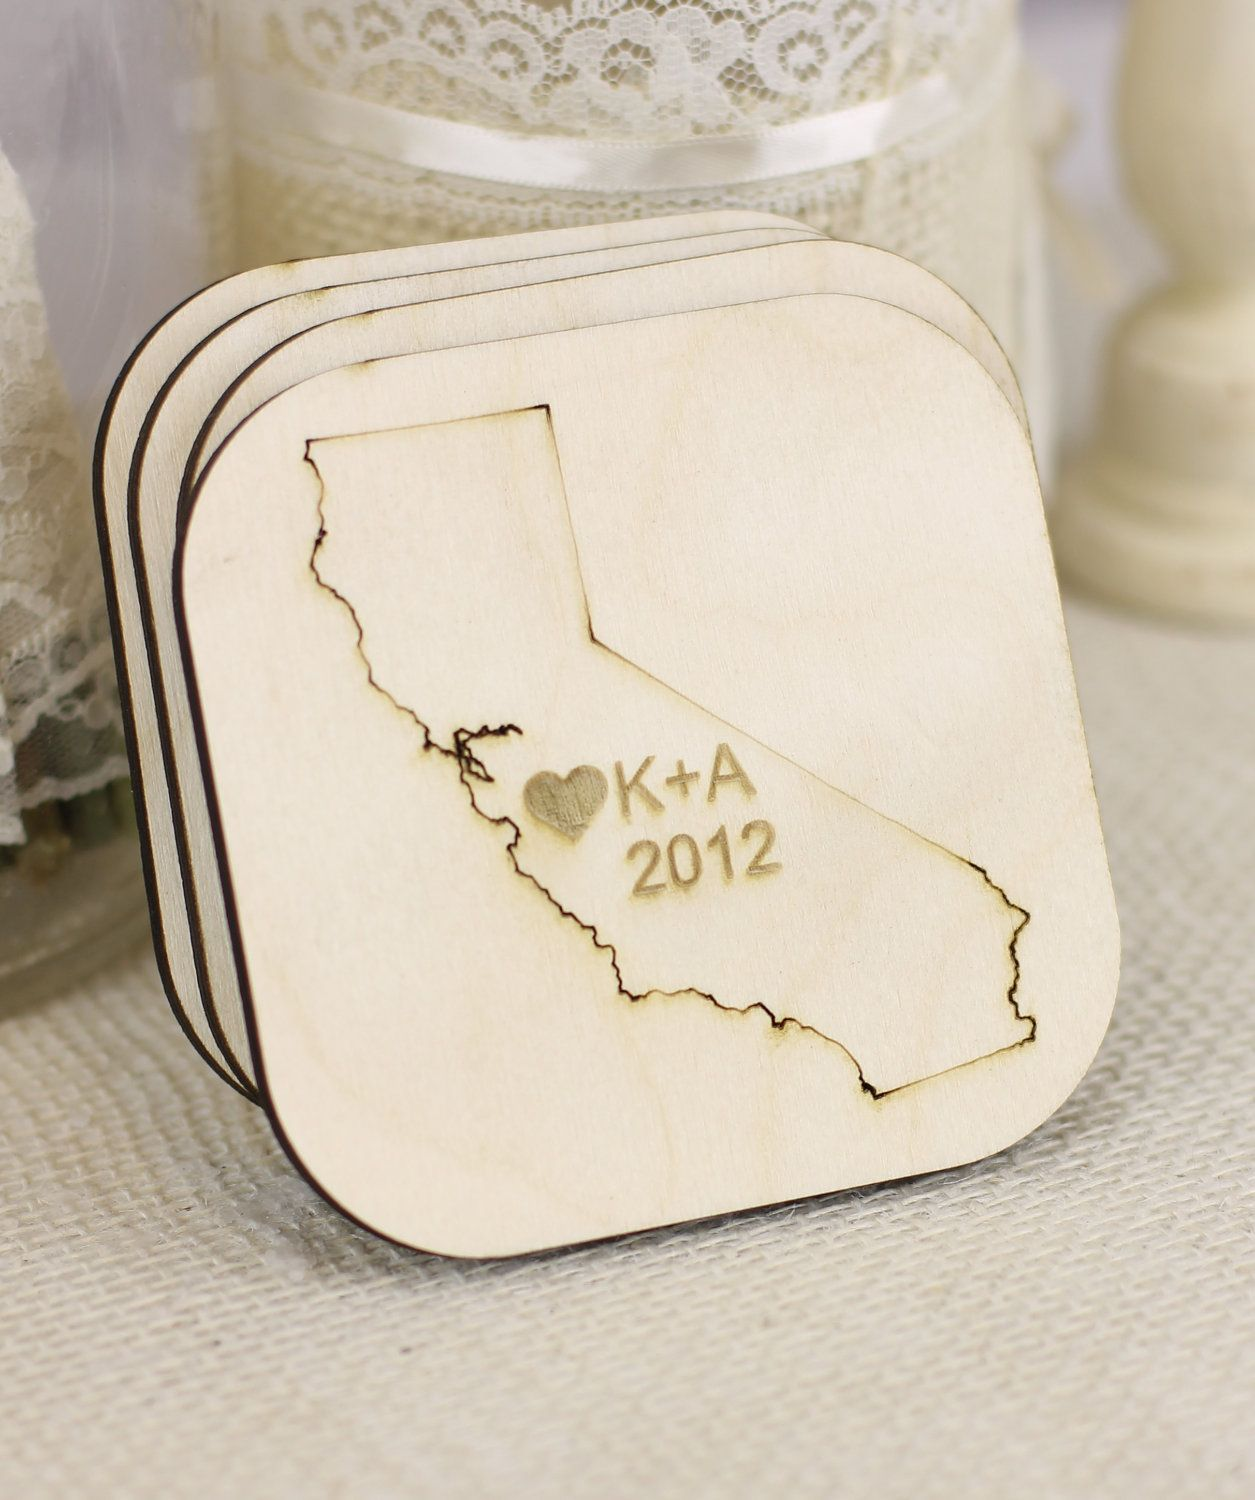 Personalized Rustic Wedding Favors State Coasters via Etsy ...